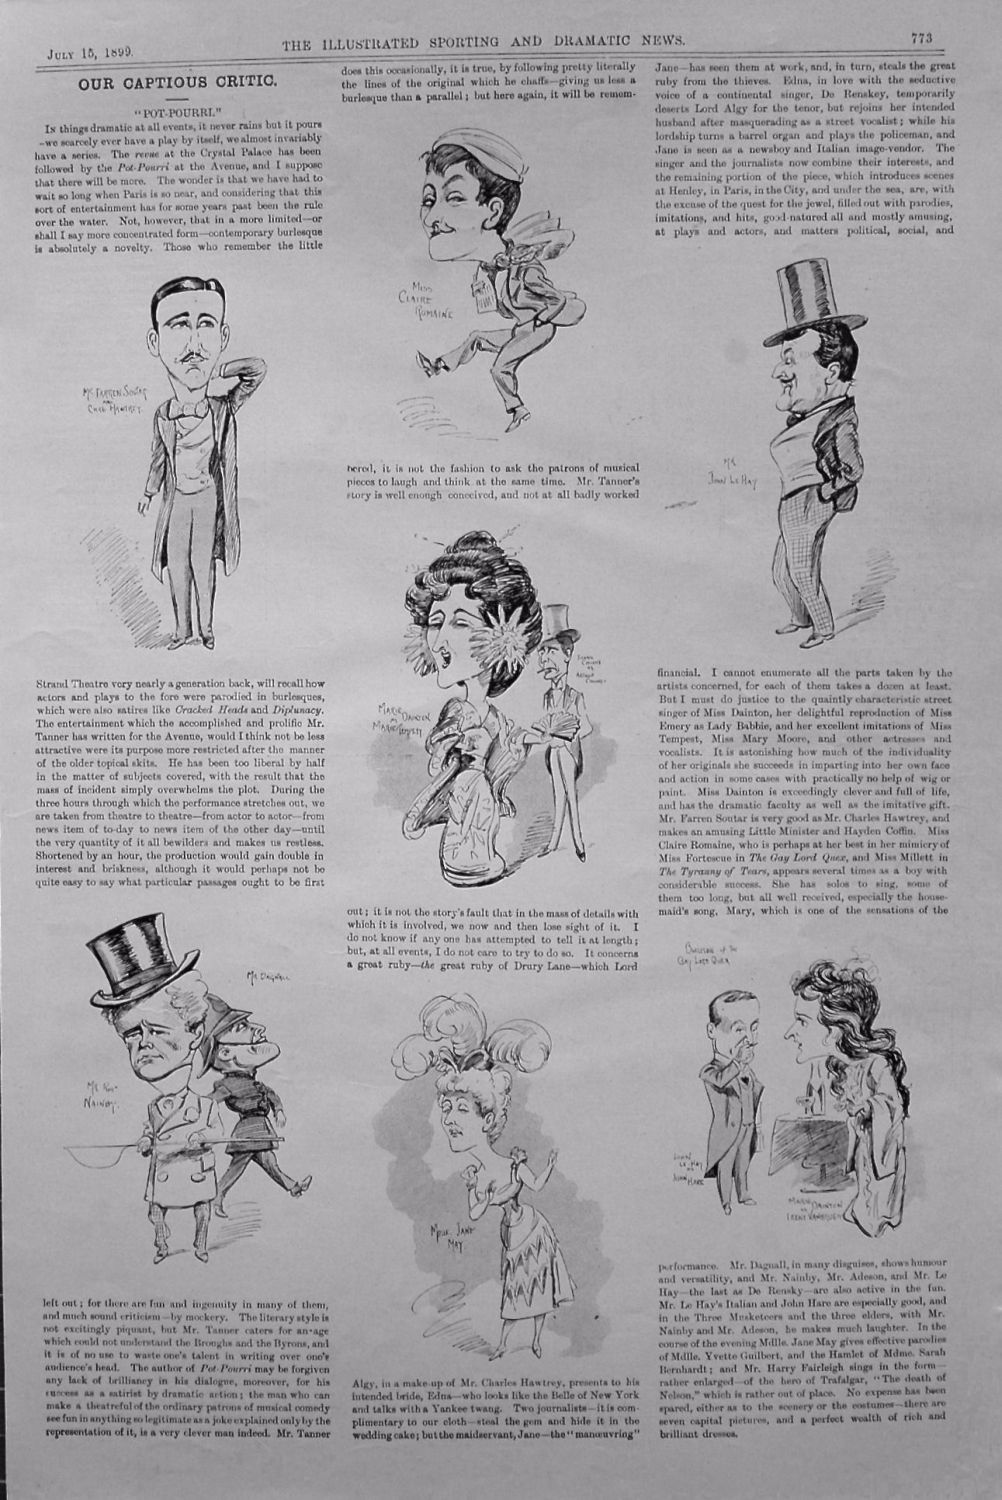 Our Captious Critic. July 15th 1899